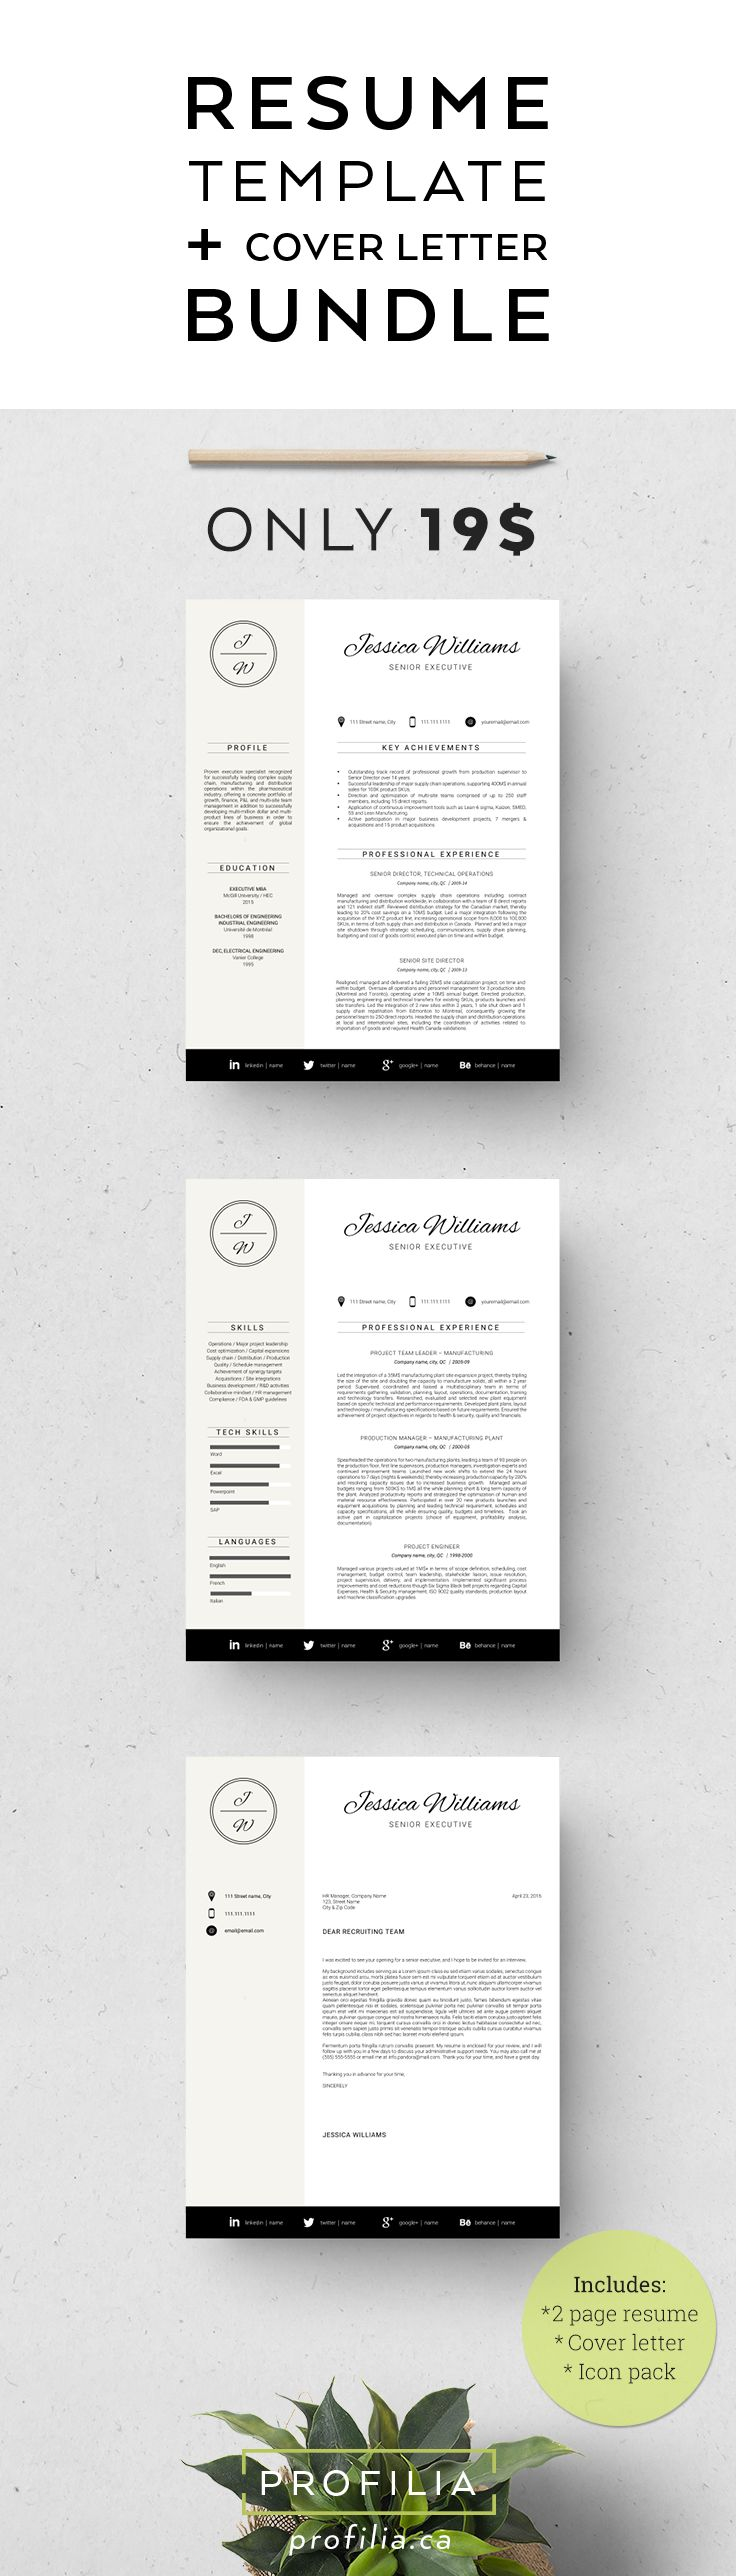 Generous 10 Envelope Template Big 1099 Excel Template Clean 2 Column Website Template 2014 Blank Calendar Template Young 2015 Calendars Templates Soft2015 Resume Keywords 3 Page Resume R Eacute Sum Eacute Hiring Librarians Resume Example ..